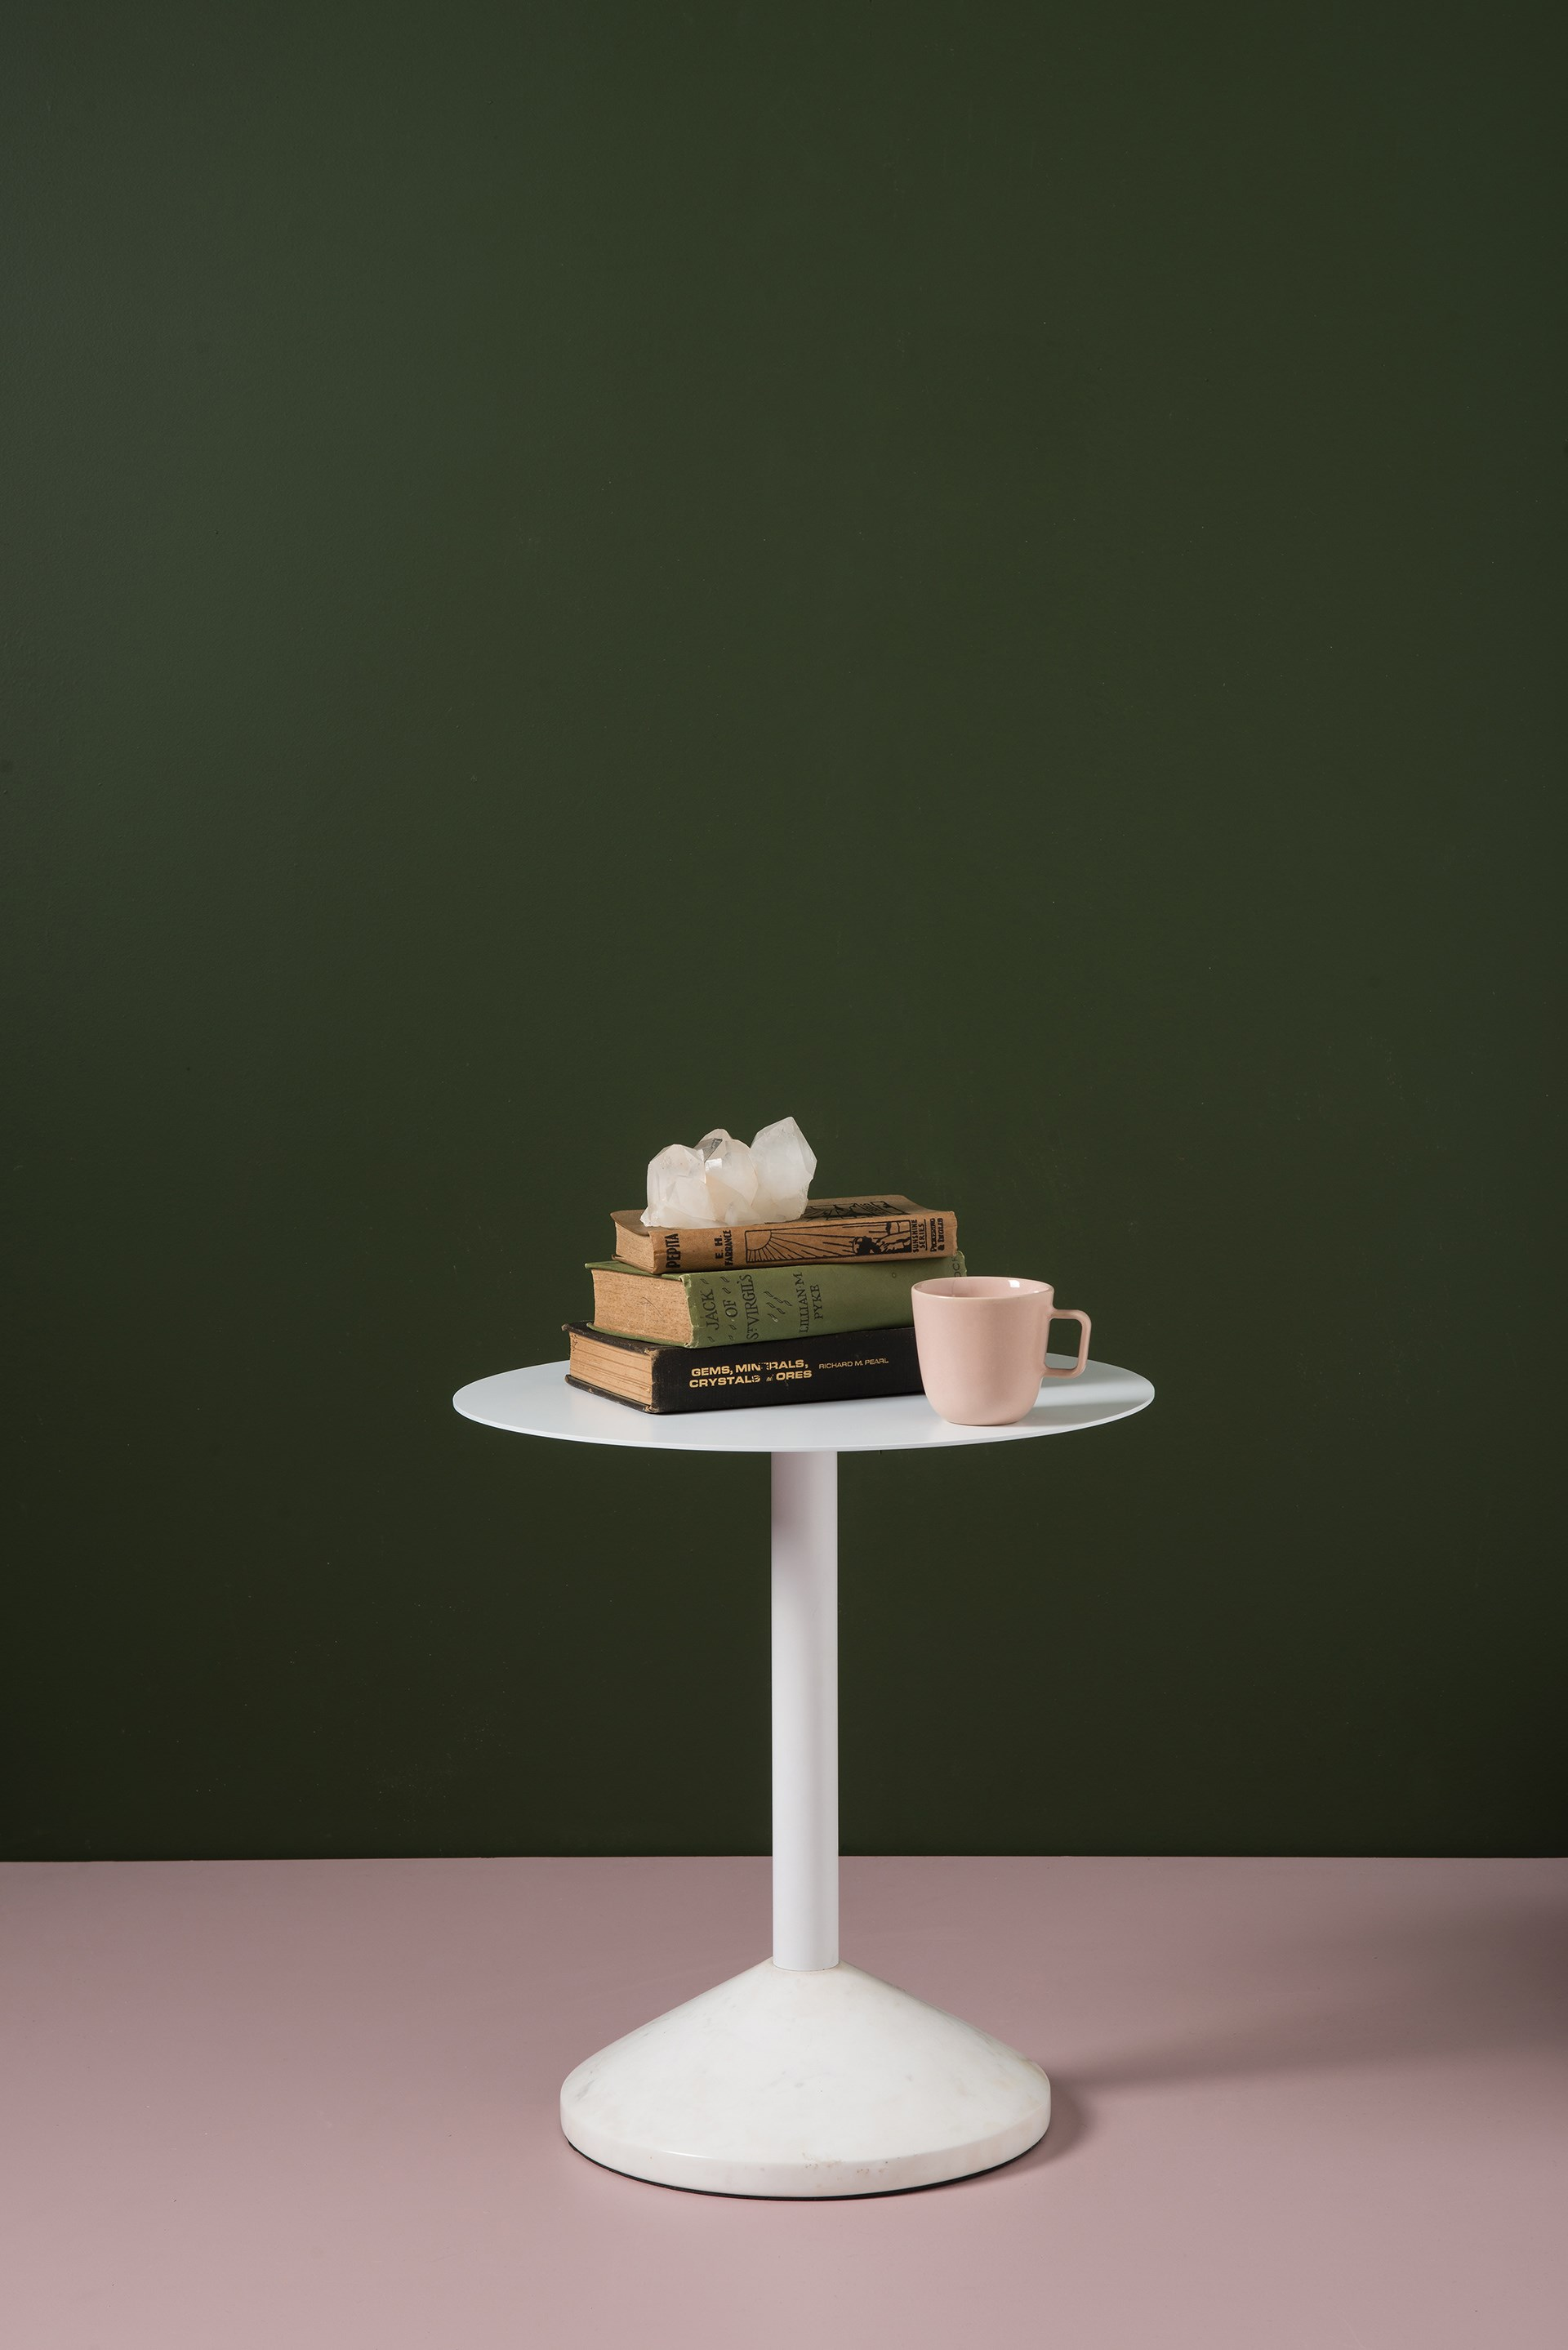 Weight side table, $699. Talo mug, $25.90.